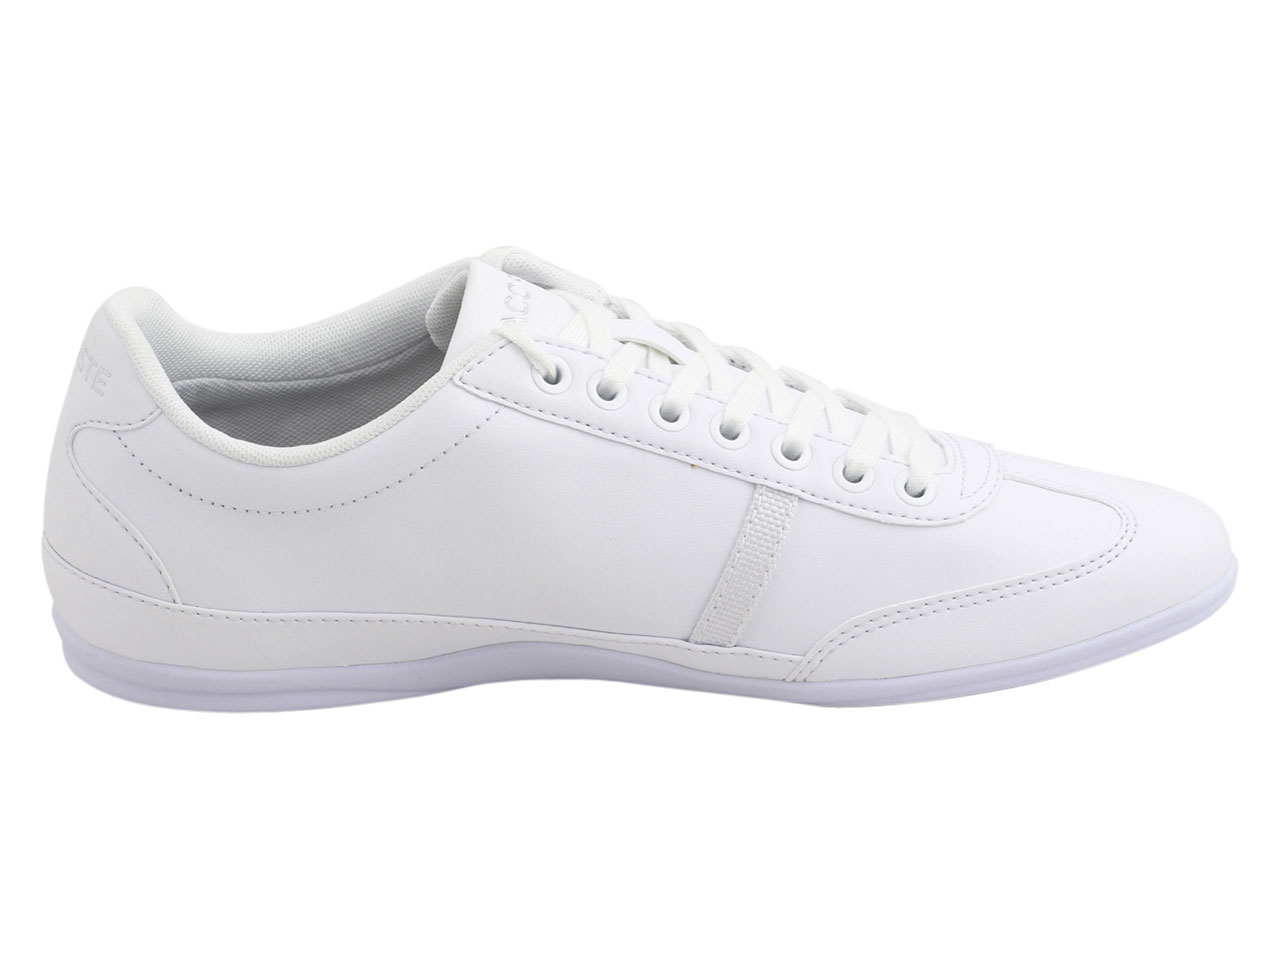 Lacoste-Men-039-s-Misano-Sport-118-Sneakers-Shoes thumbnail 23